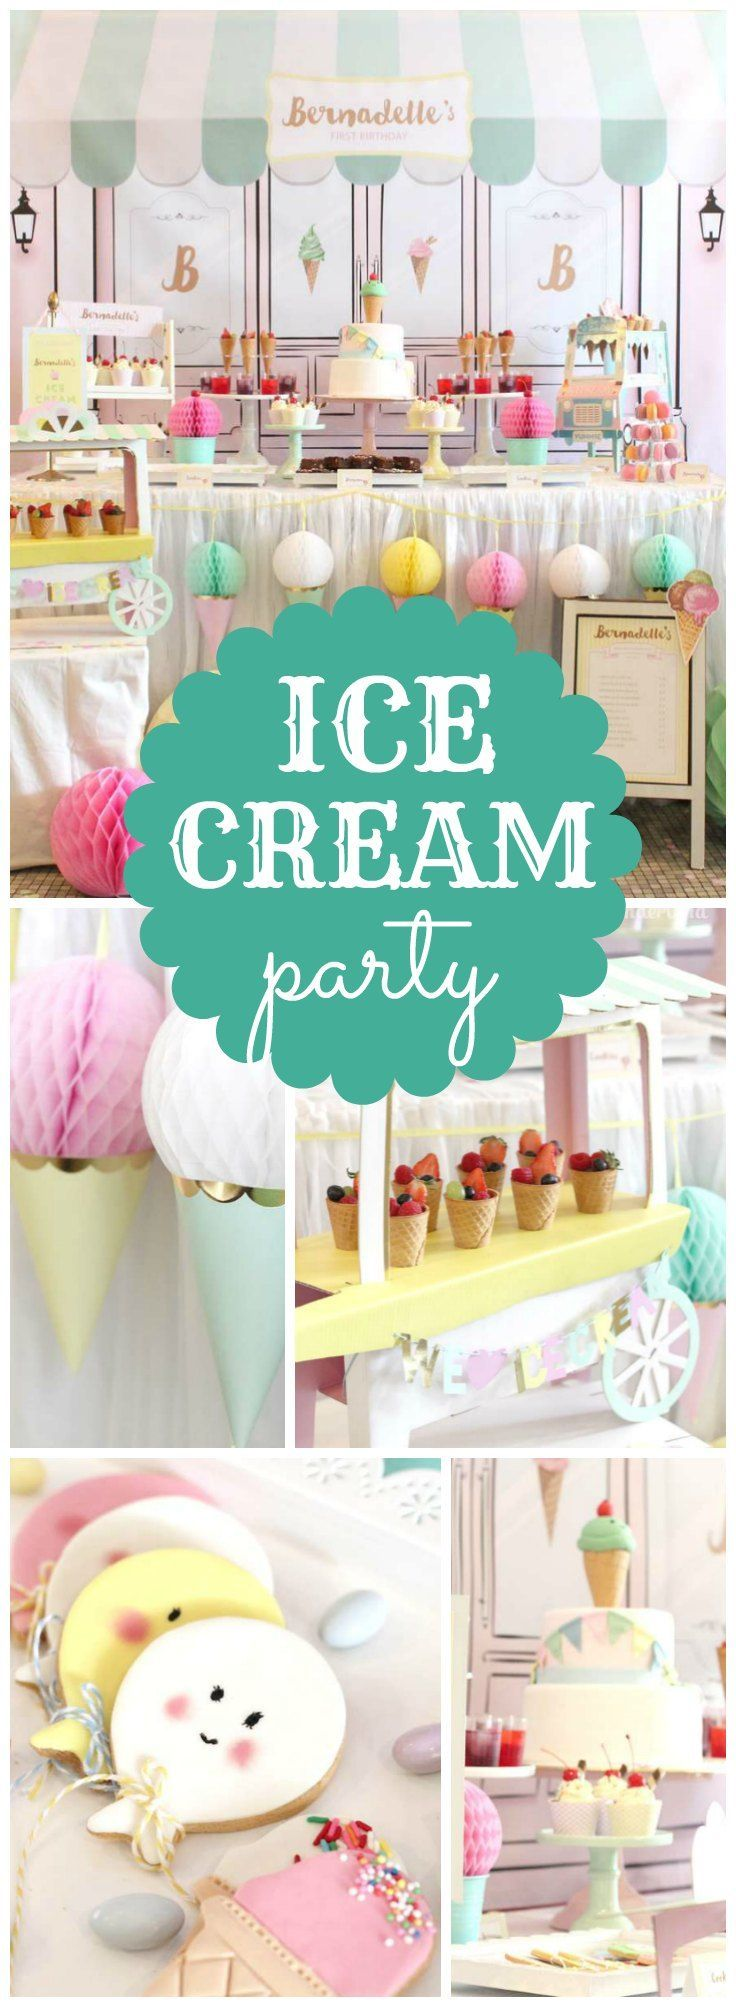 2 Year Birthday Themes 2389 Best Kids Party Ideas Images On Pinterest Birthday Party